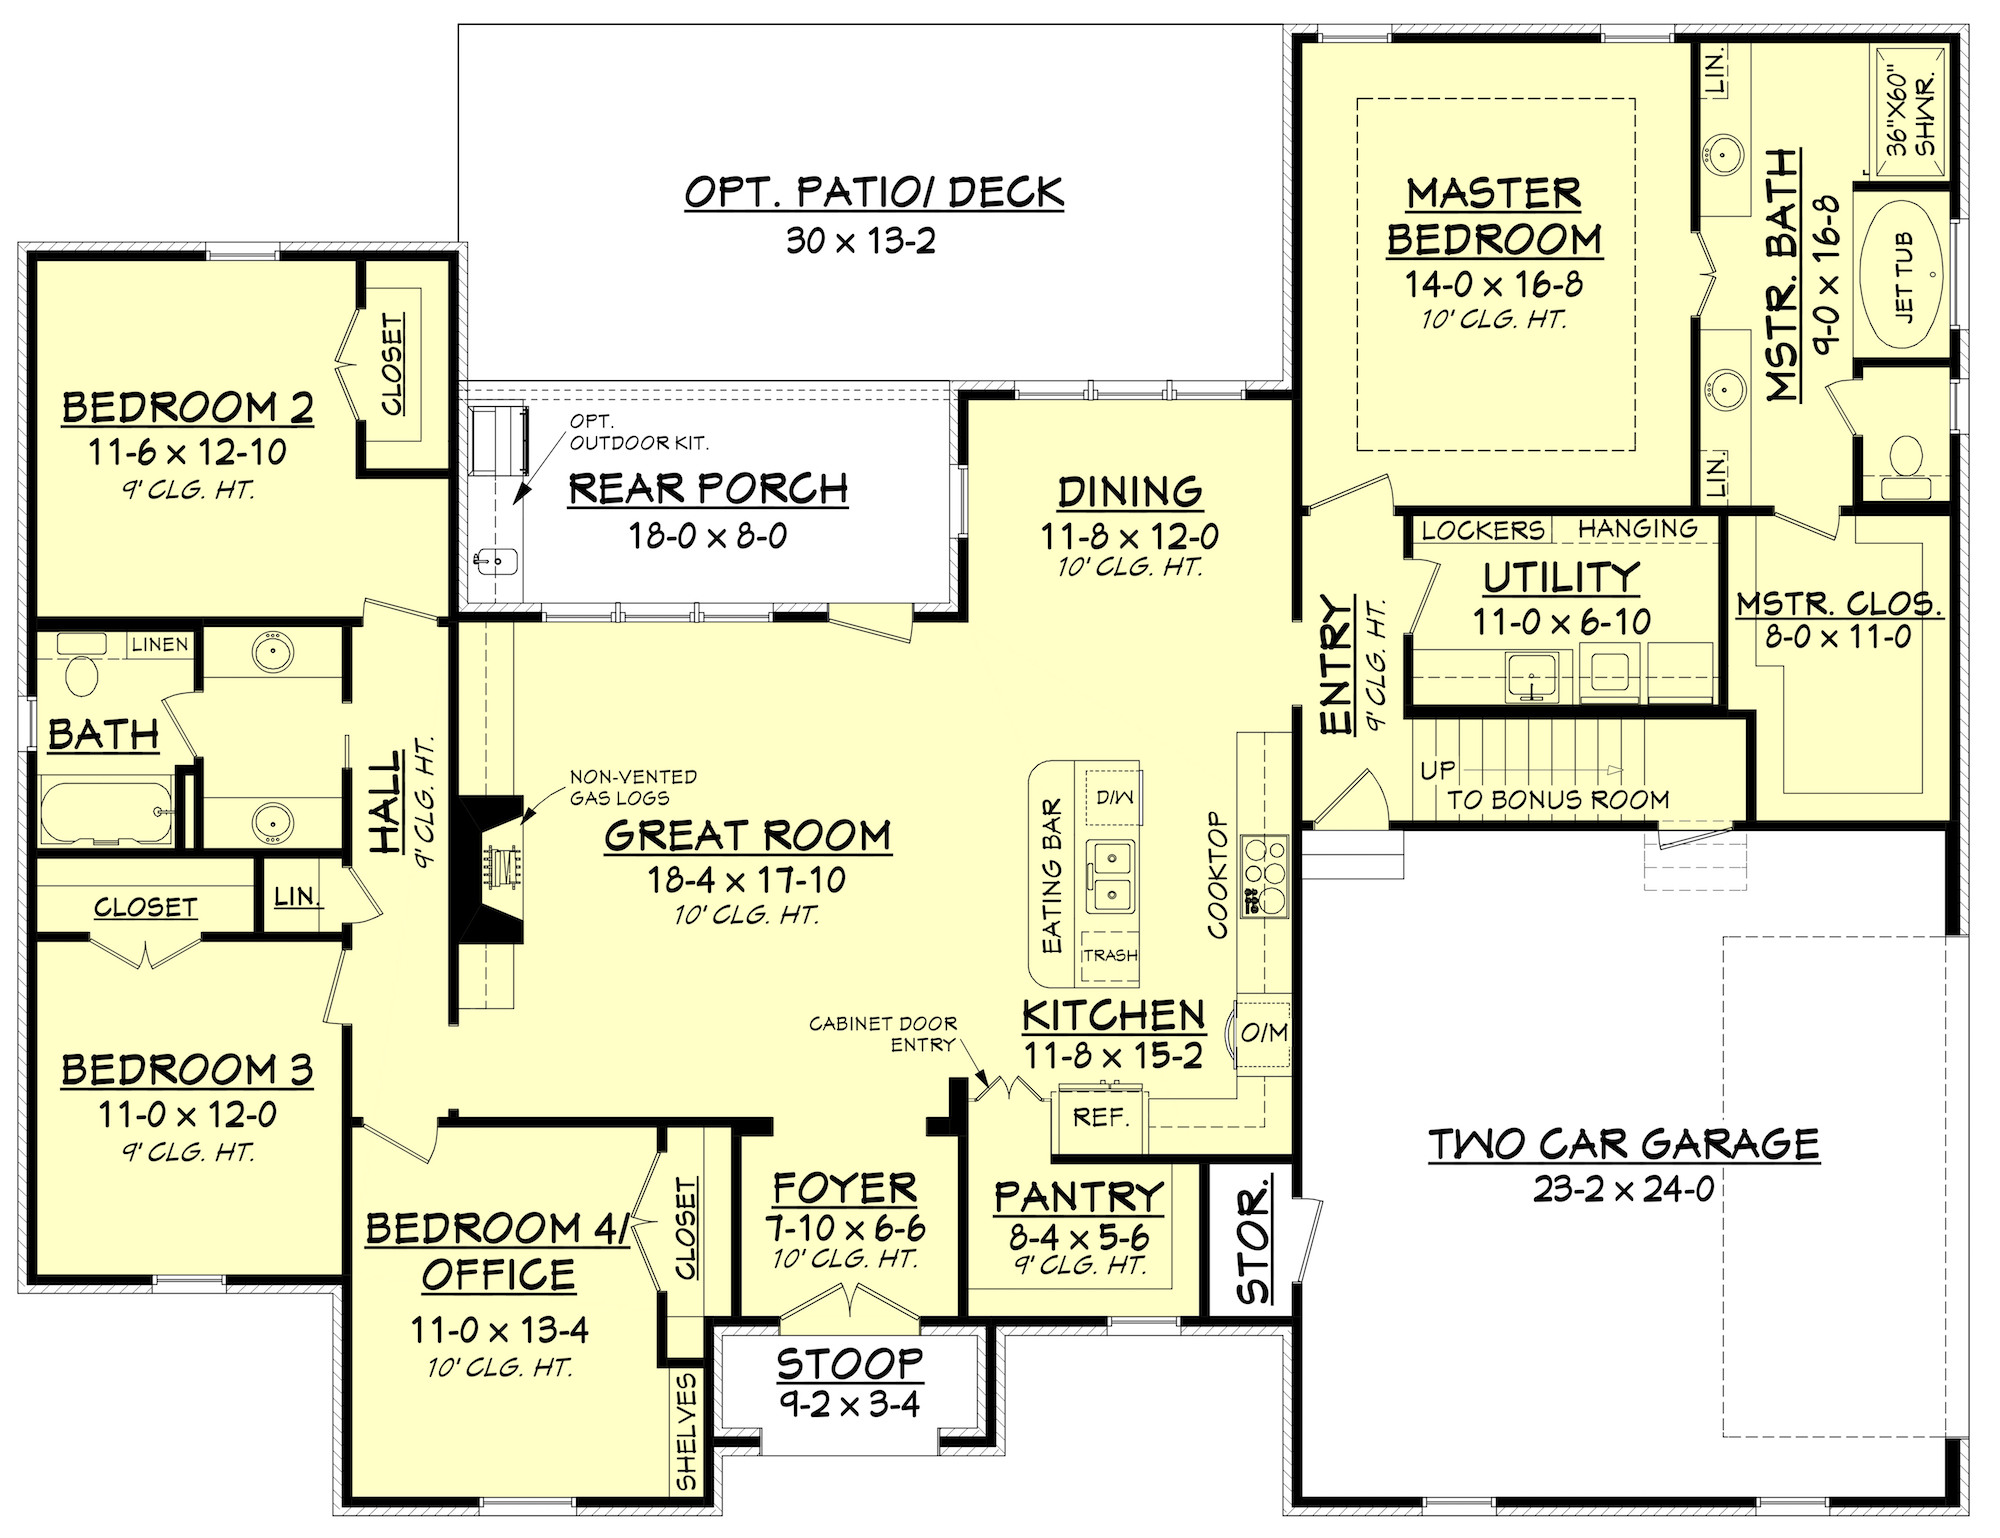 Acadian house plan 142 1154 4 bedrm 2210 sq ft home plan for House plan house plan